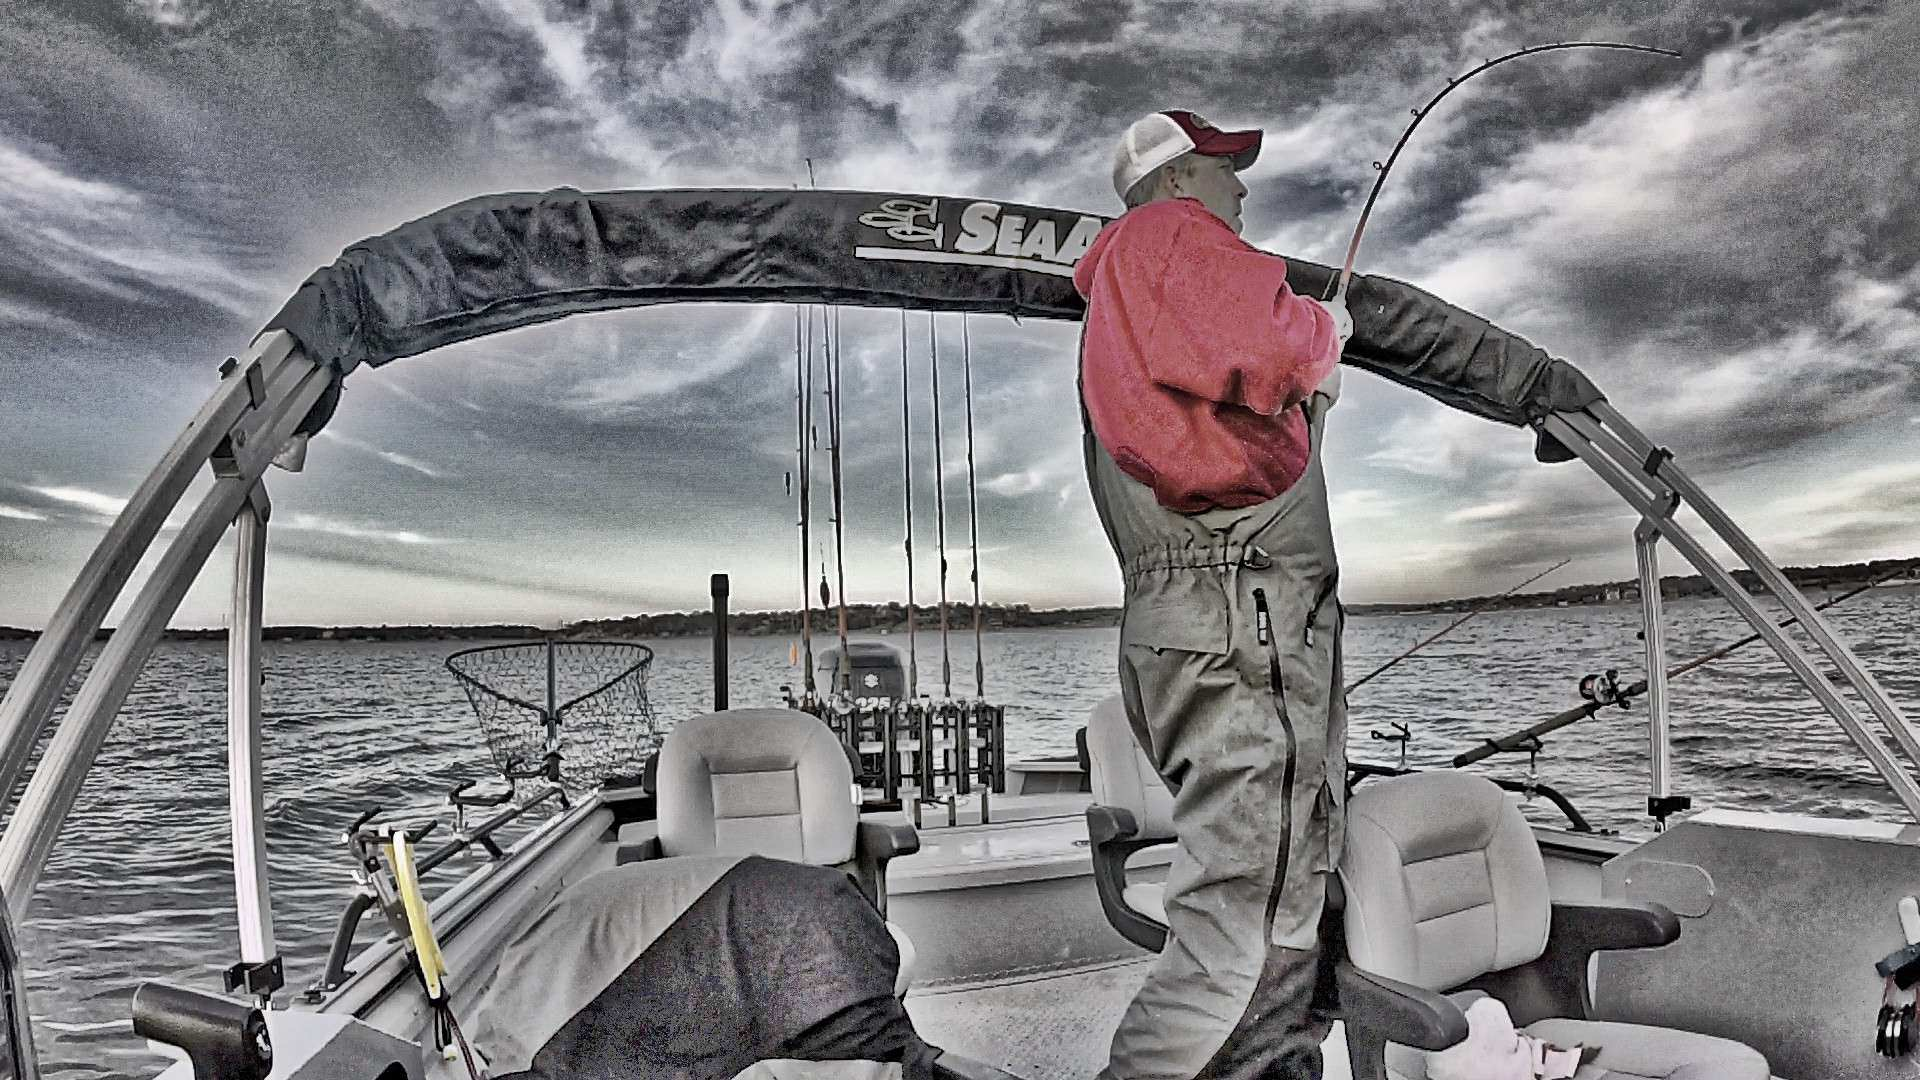 Catfish Rigs The Best For Catfishing Knot Tying Diagrams Http Wwwfintalkcom Fishingknots Palomarknot Choosing Right Gear Including Rods Reels And Tackle Will Save You A Lot Of Time Frustration In Your Quest To Catch